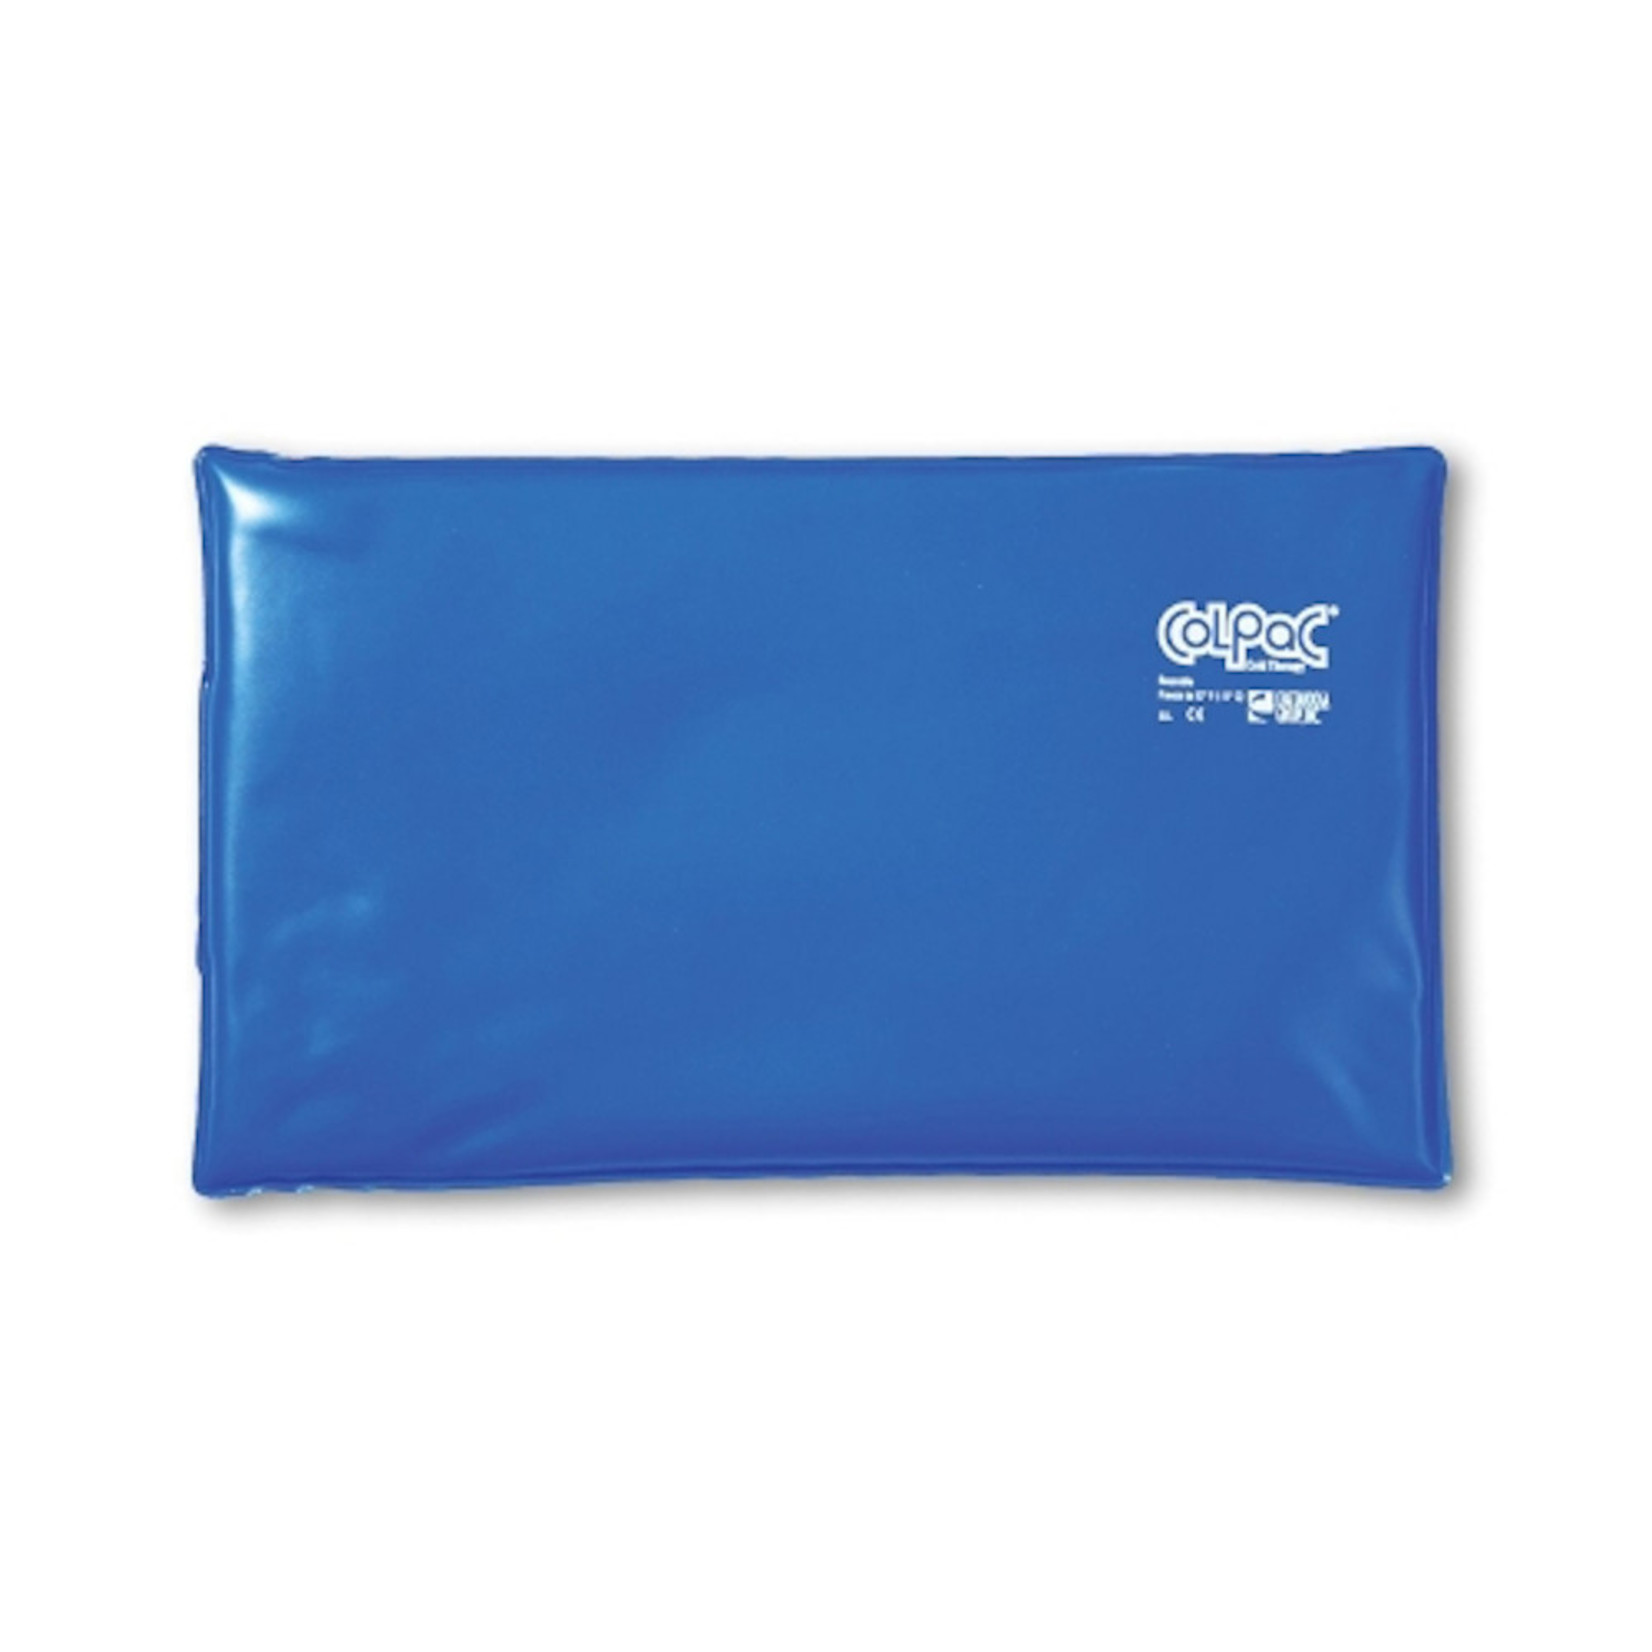 COLPAC OVERSIZE - 11x21 1512